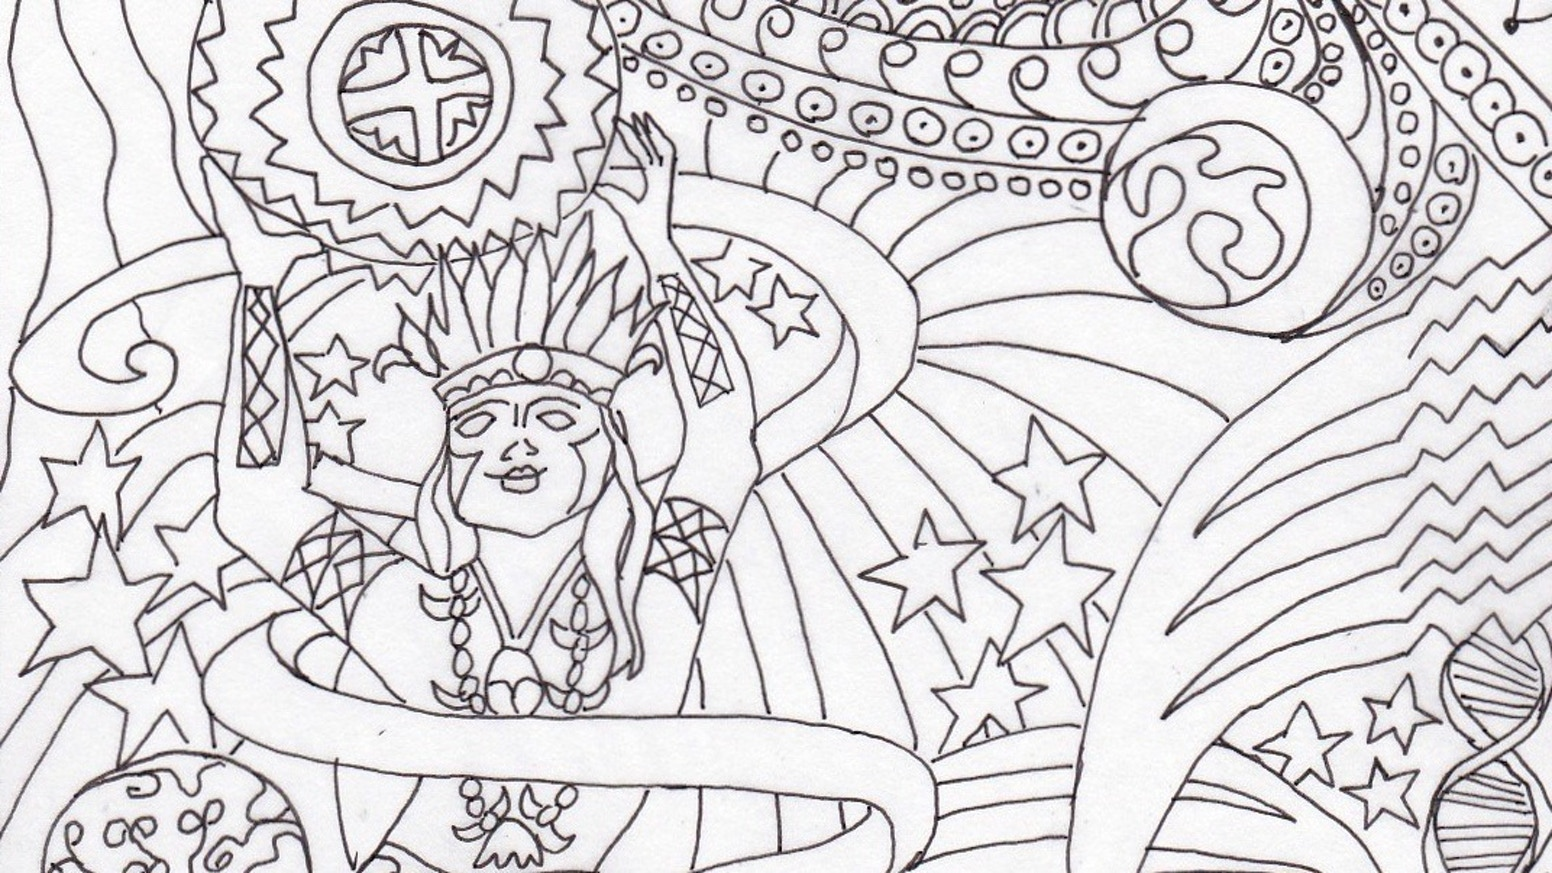 Planetary Gods & Goddesses Coloring Book: Astronomy & Myth